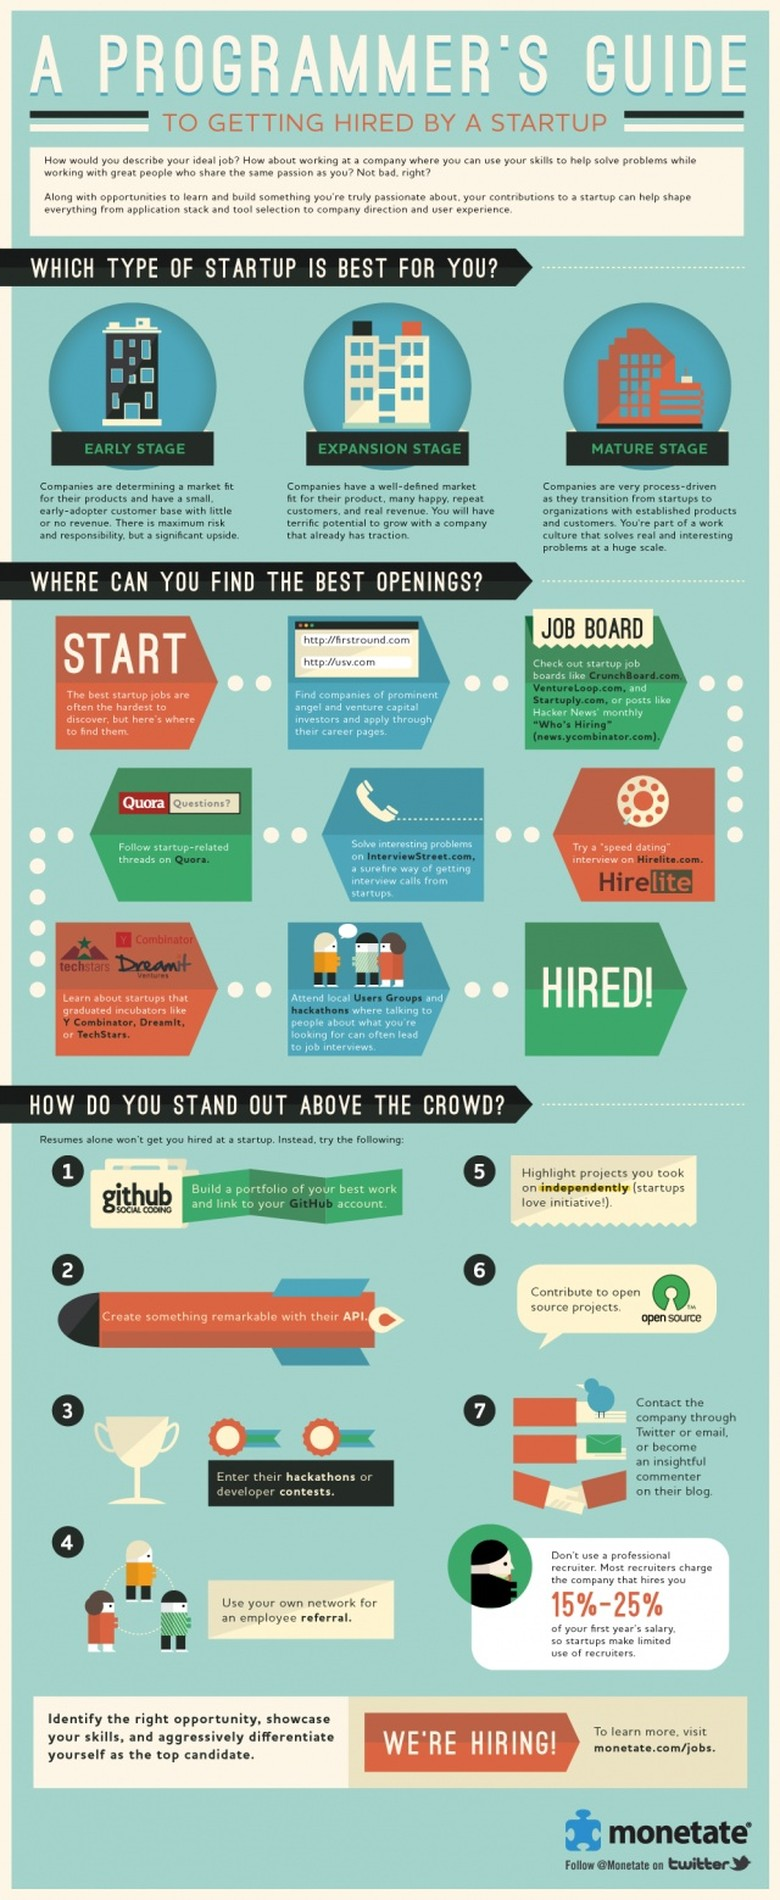 how to get hired as a programmer